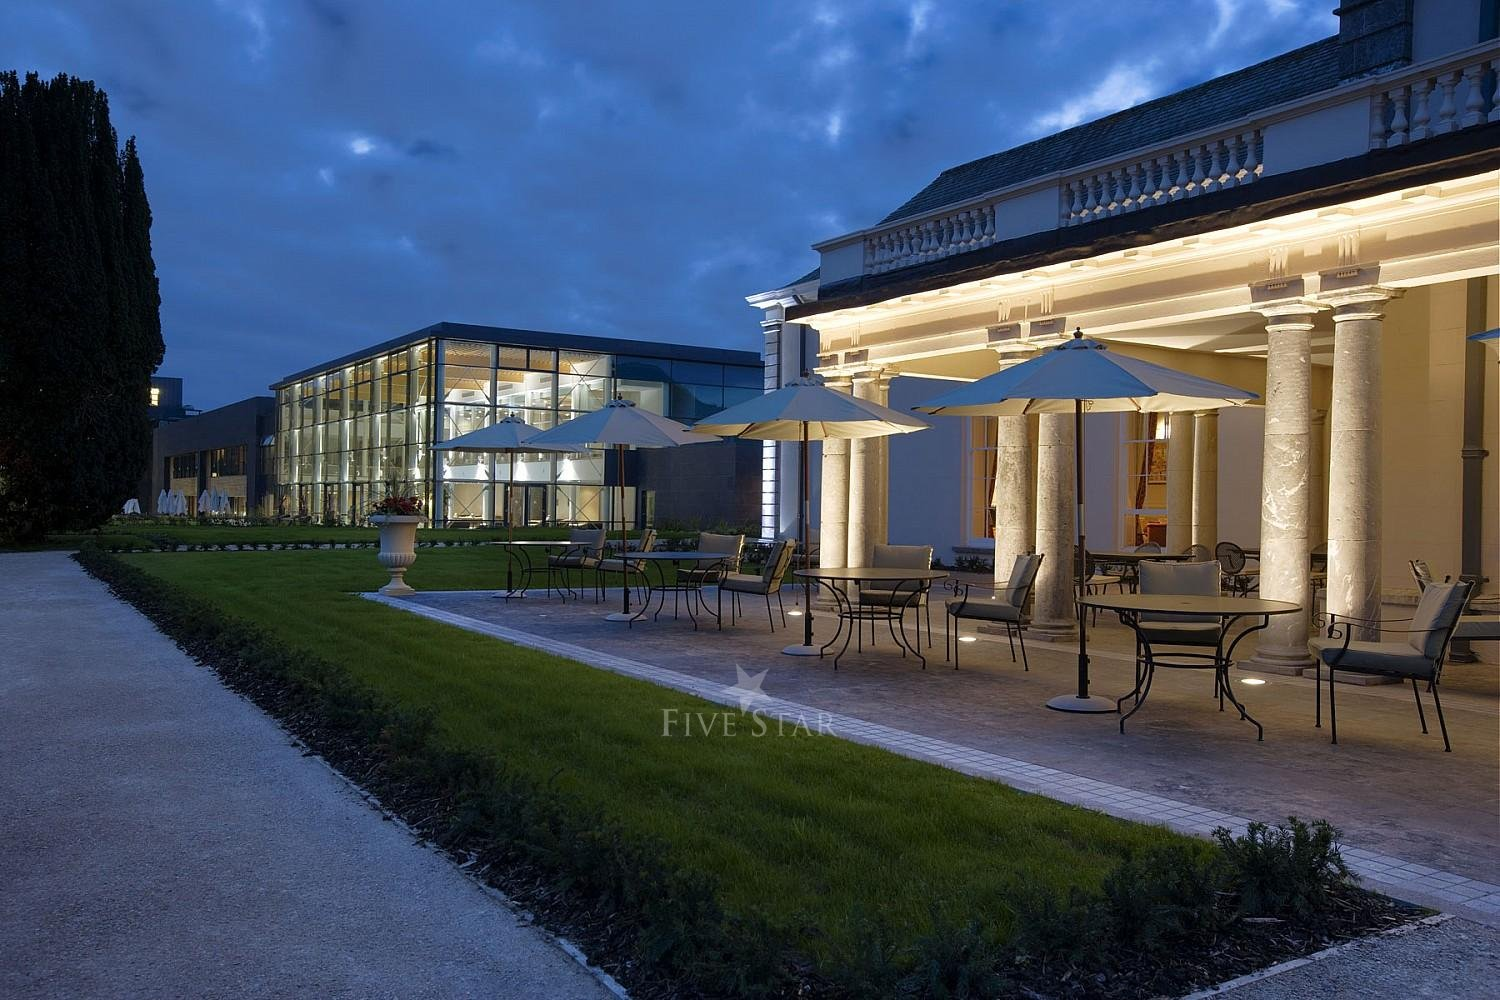 Castlemartyr Resort photo 7